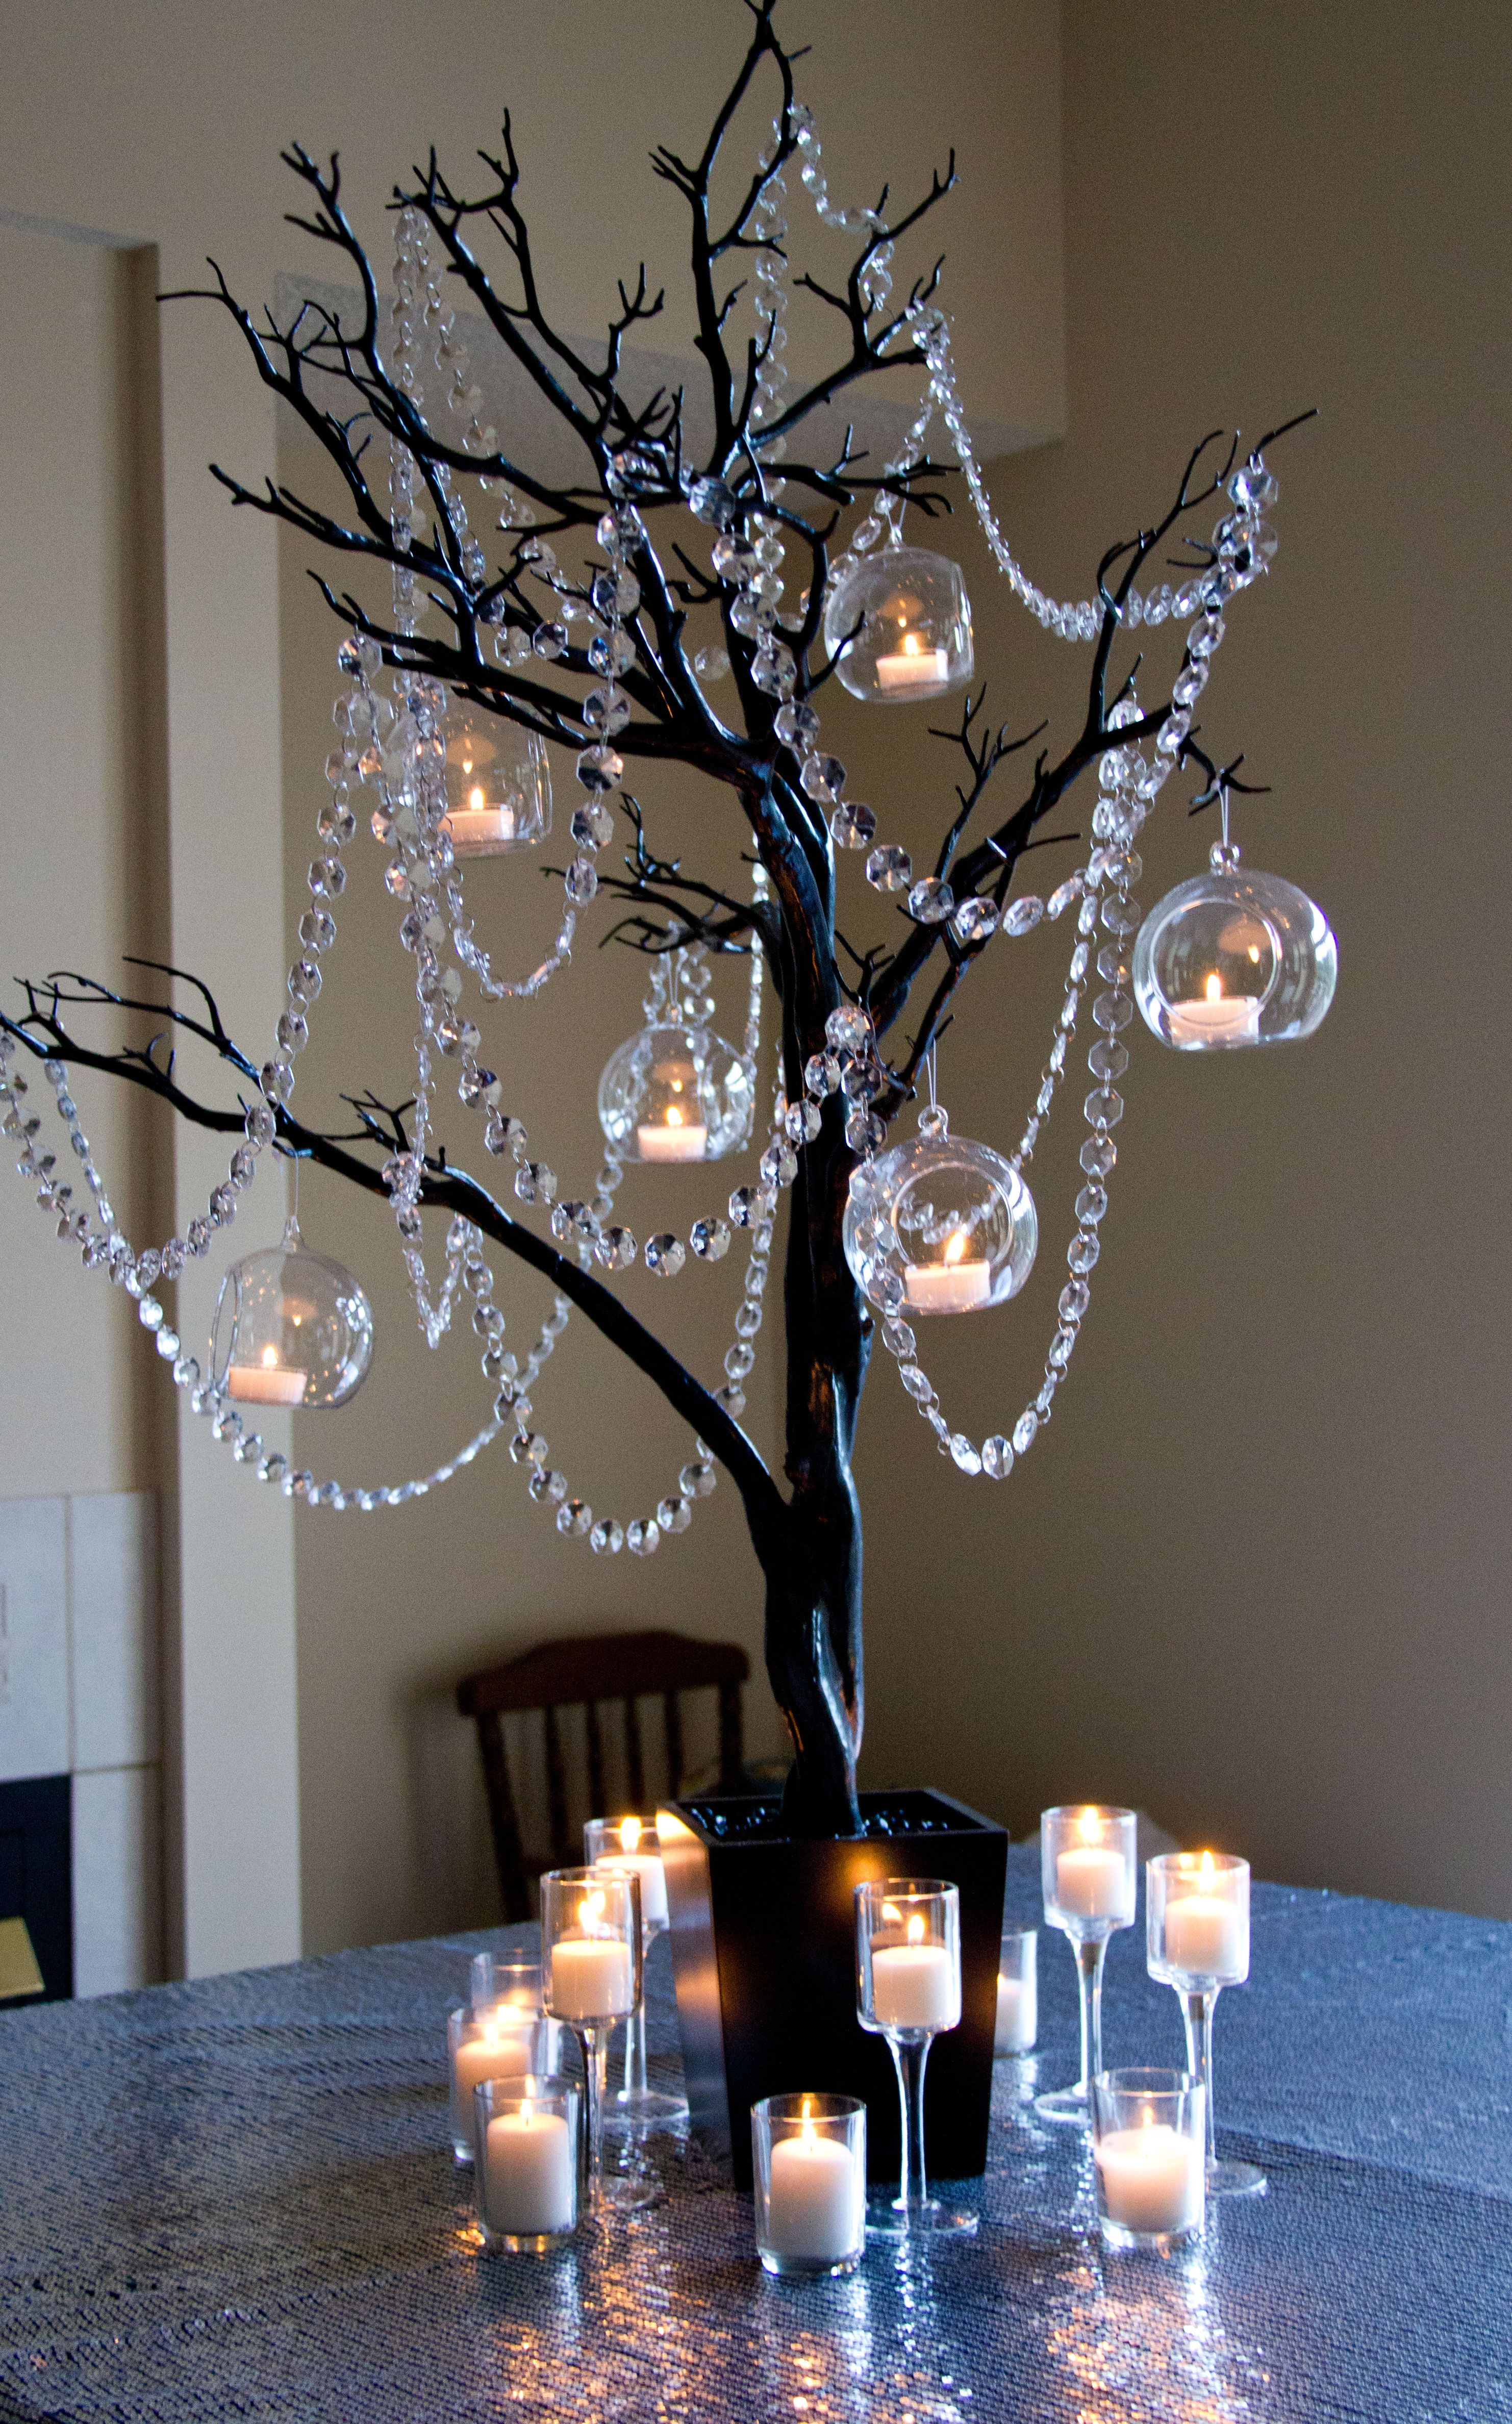 Black Manzanita Tree With Crystal Garland And Hanging Tealights